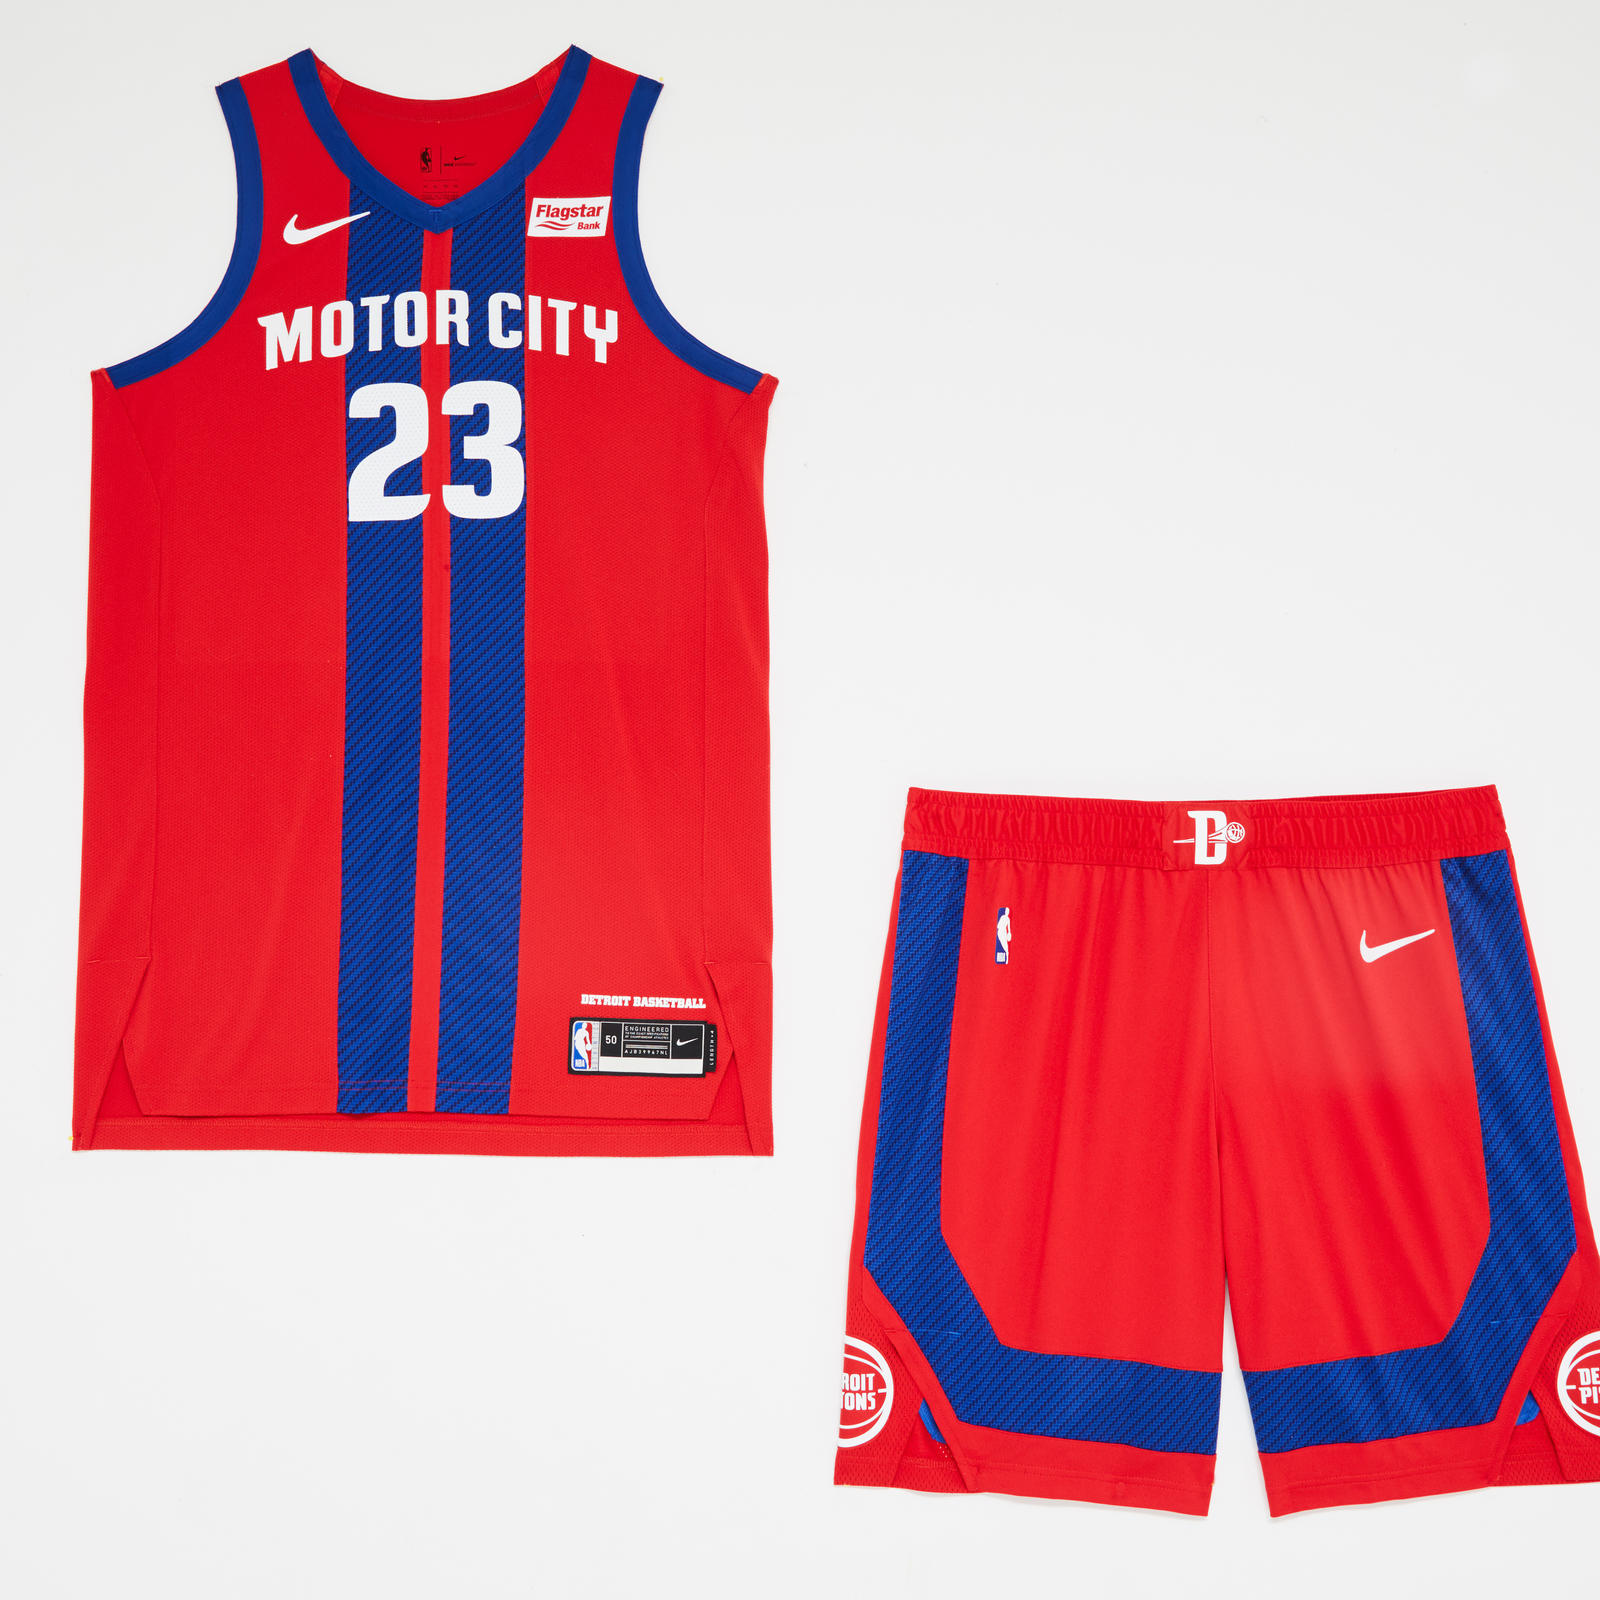 City Edition Jerseys - November 20 Embargo 14